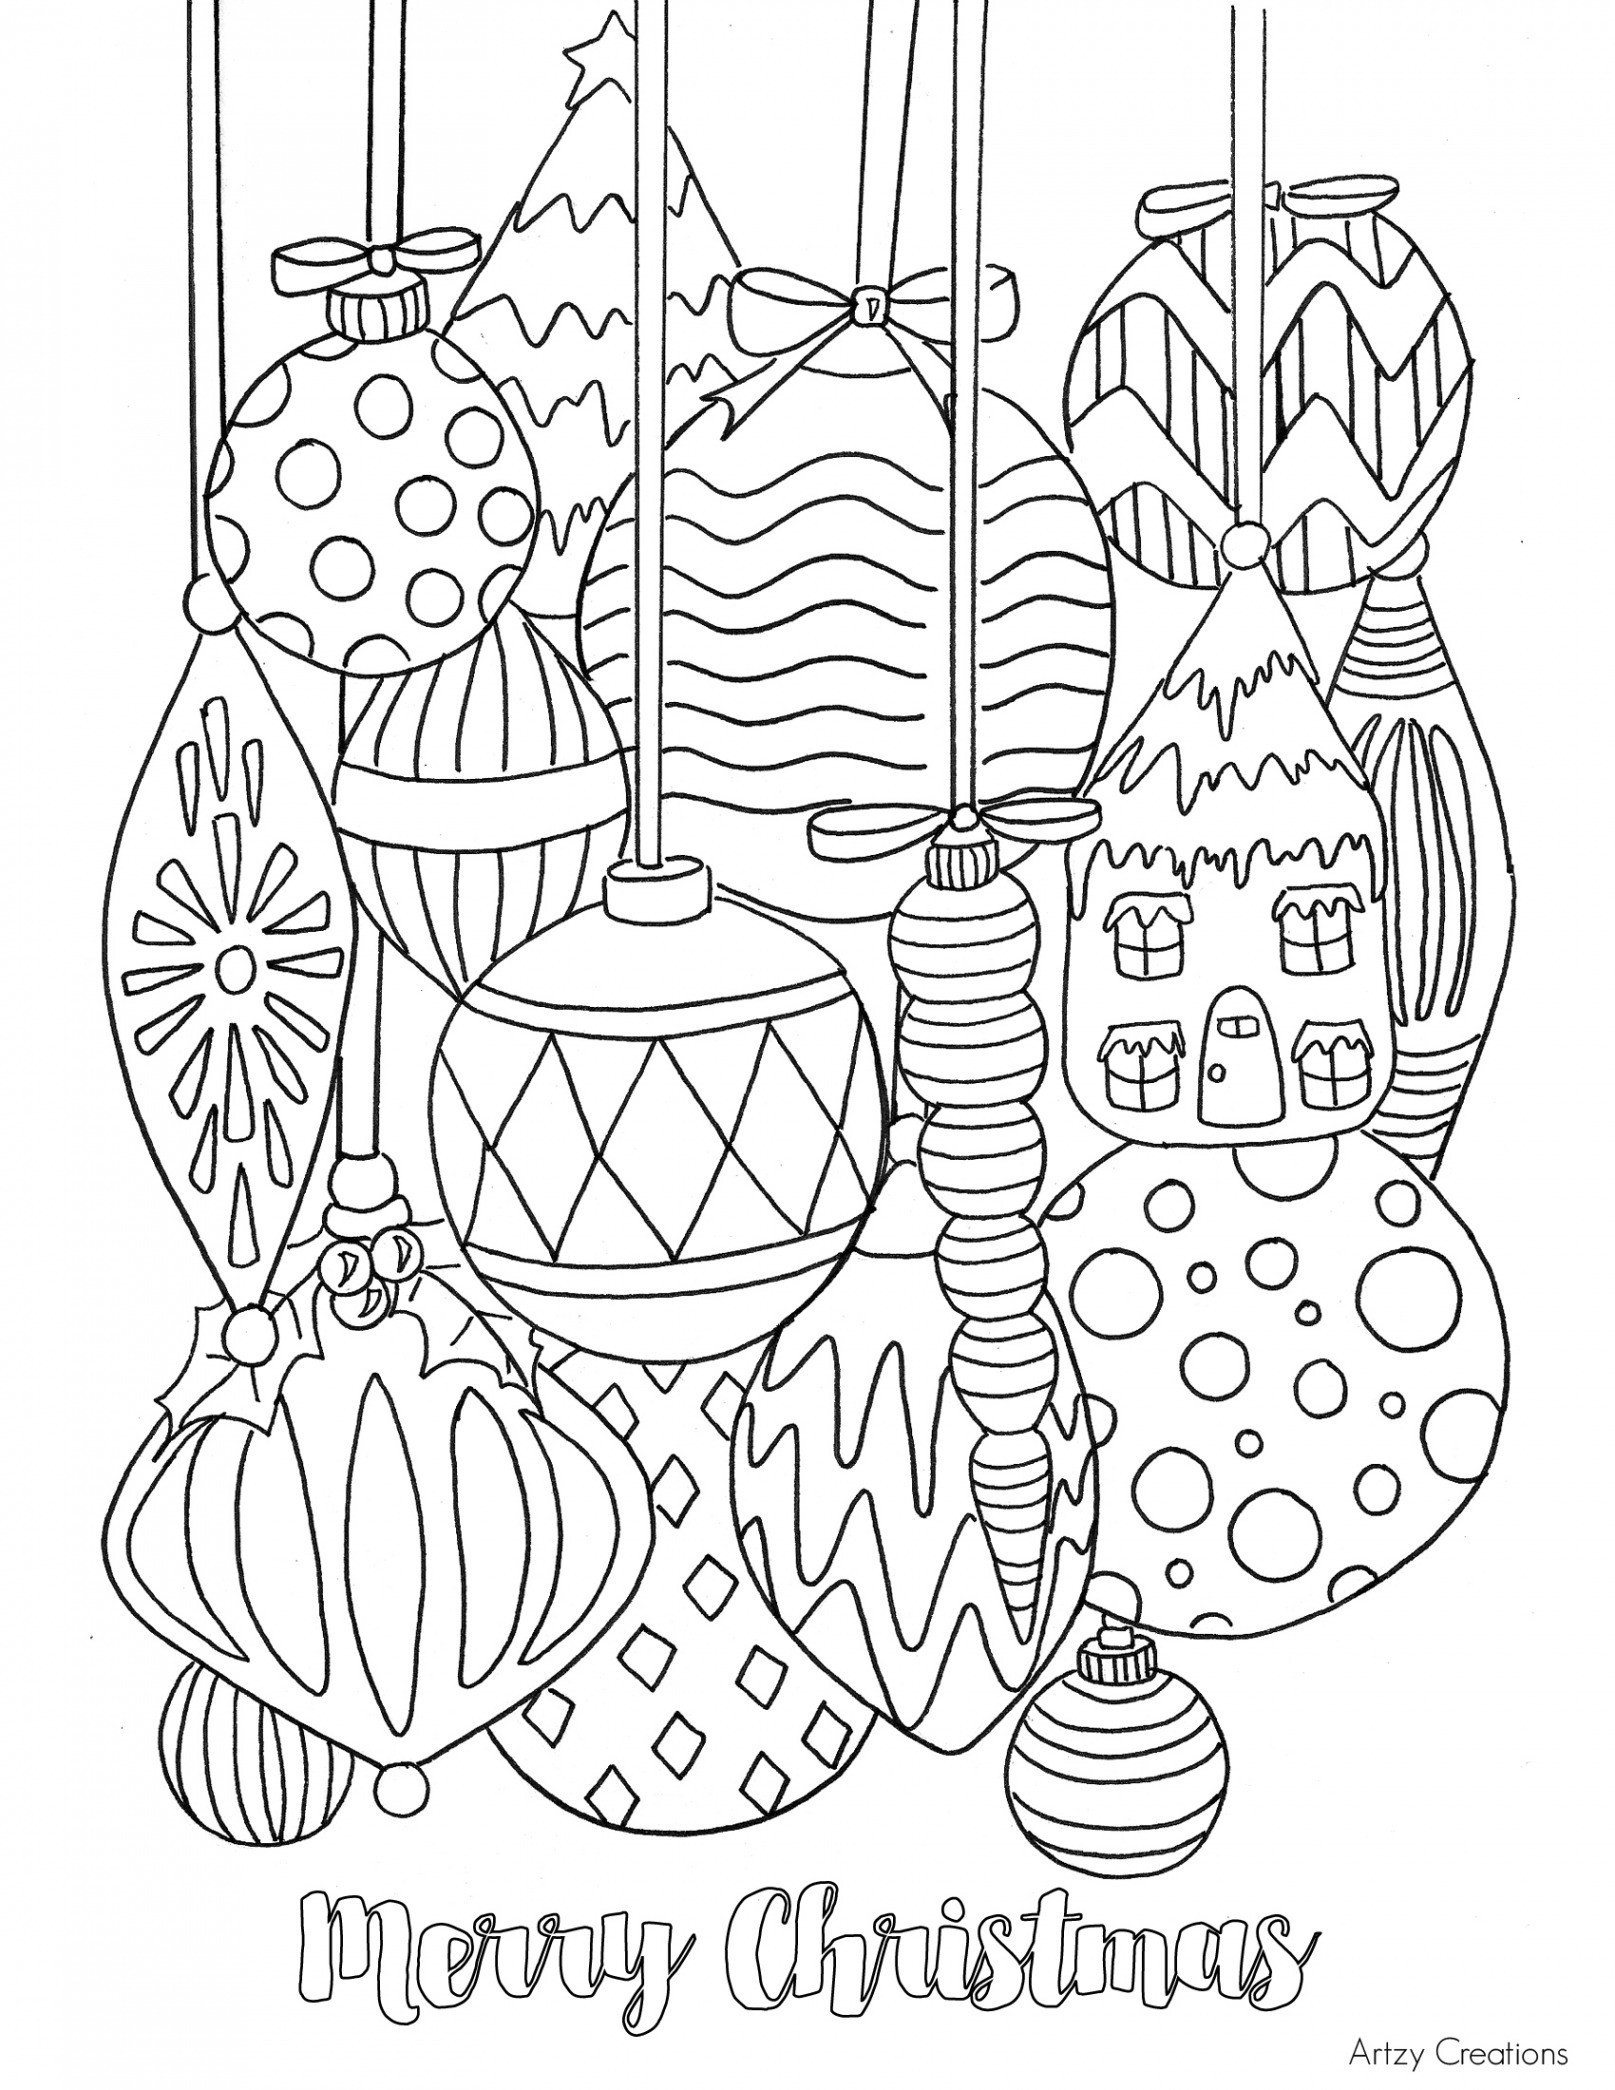 Merry Christmas Colouring Pages Printable With Free Uk Katesgrove Page 70 Of 85